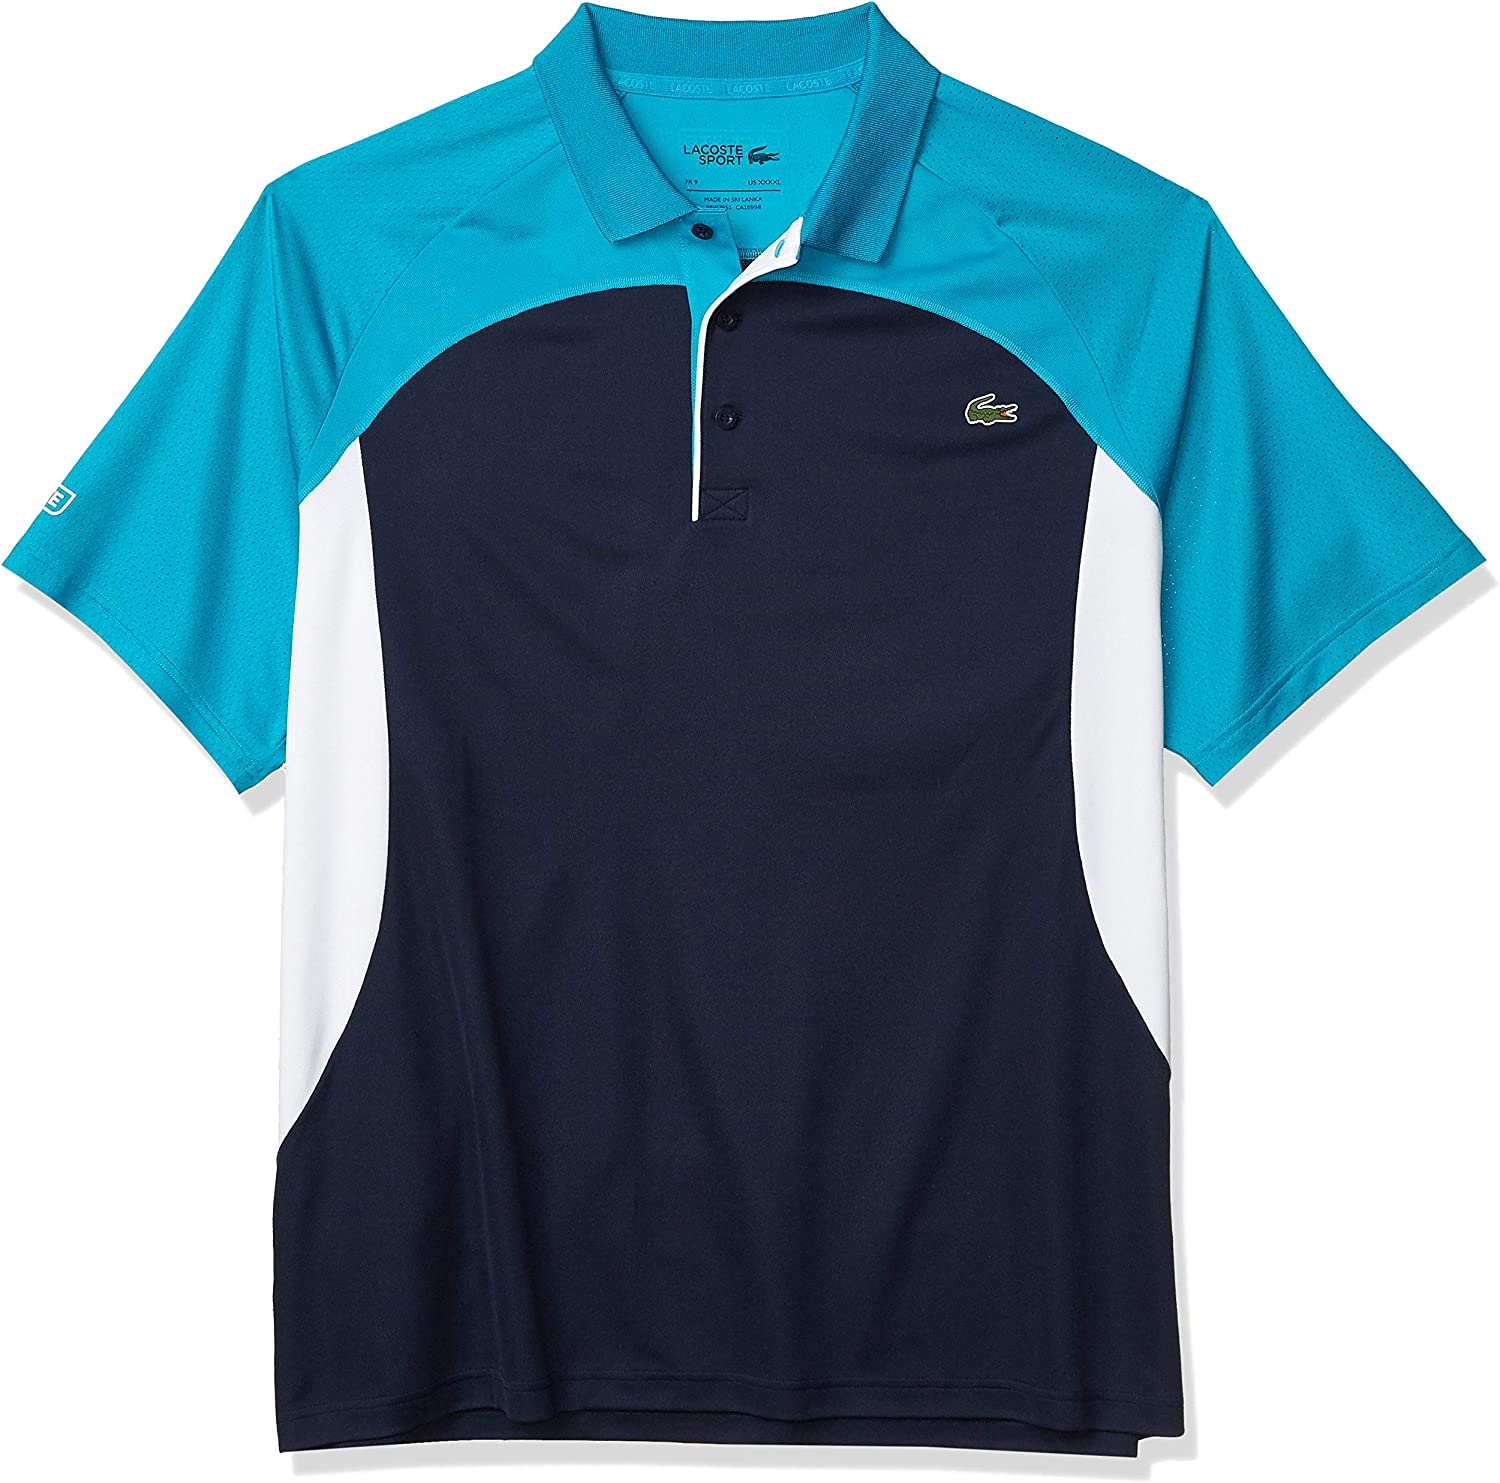 Lacoste Mens Sport Short Sleeve Colorblock Ultra Dry Polo Shirt